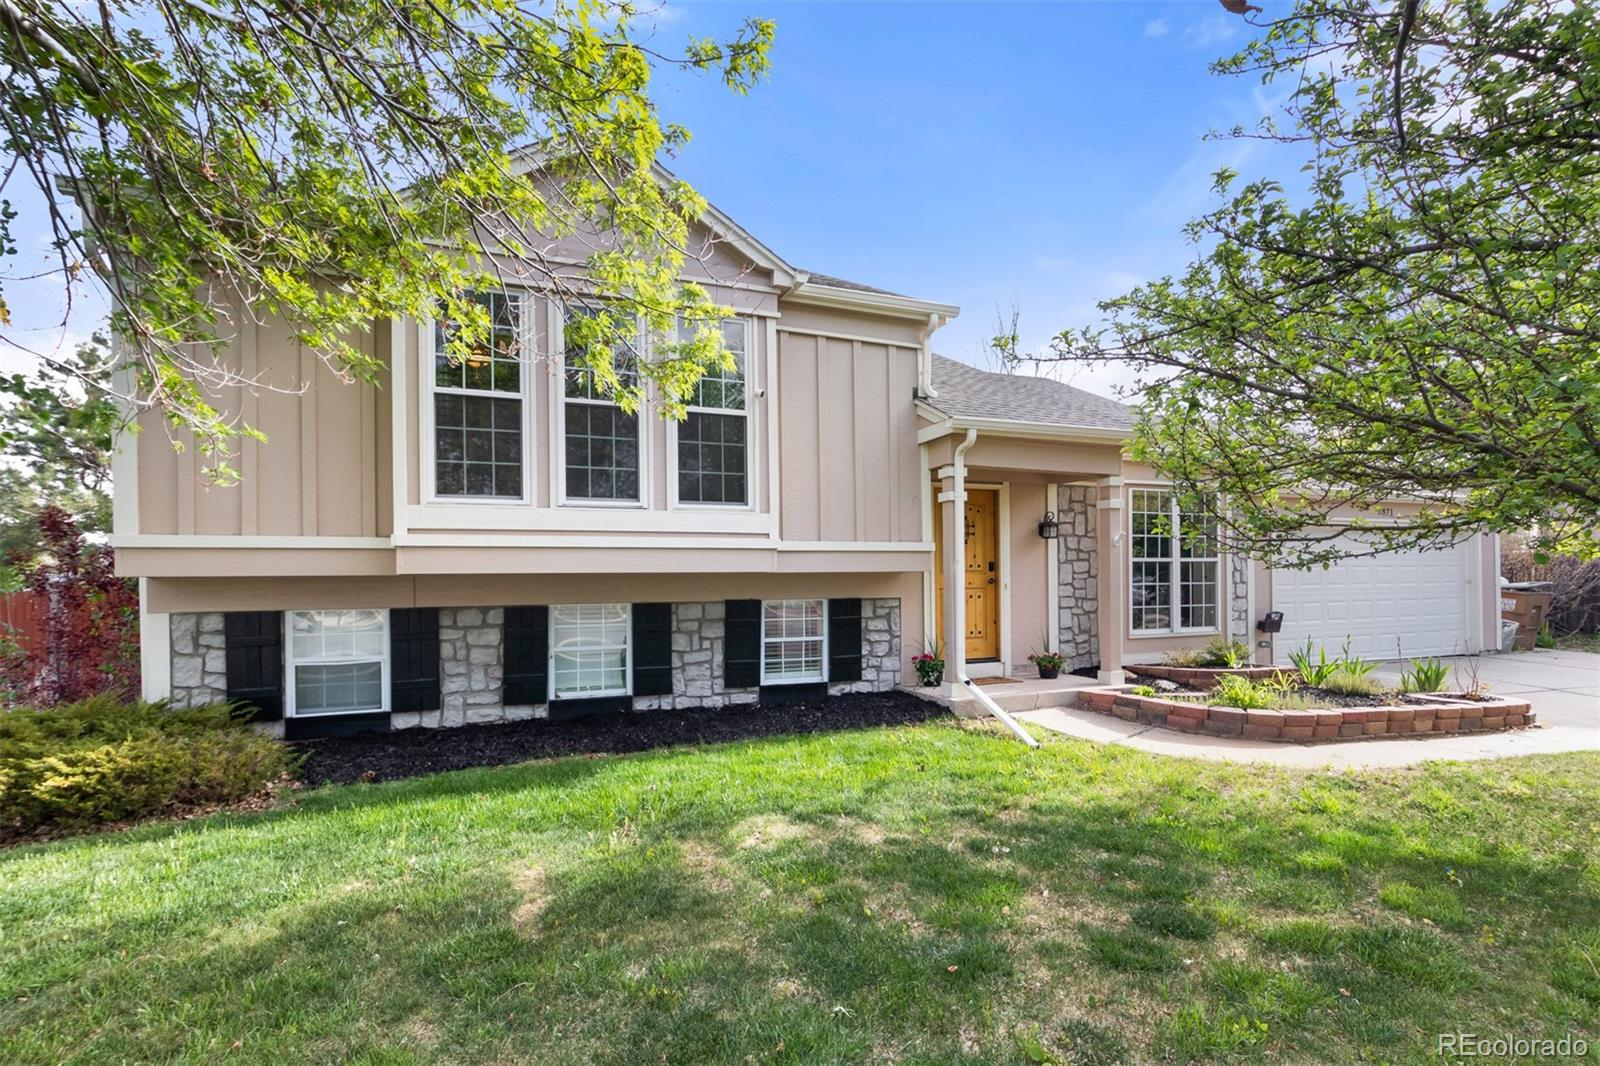 5871 S Orleans Way Property Photo - Centennial, CO real estate listing